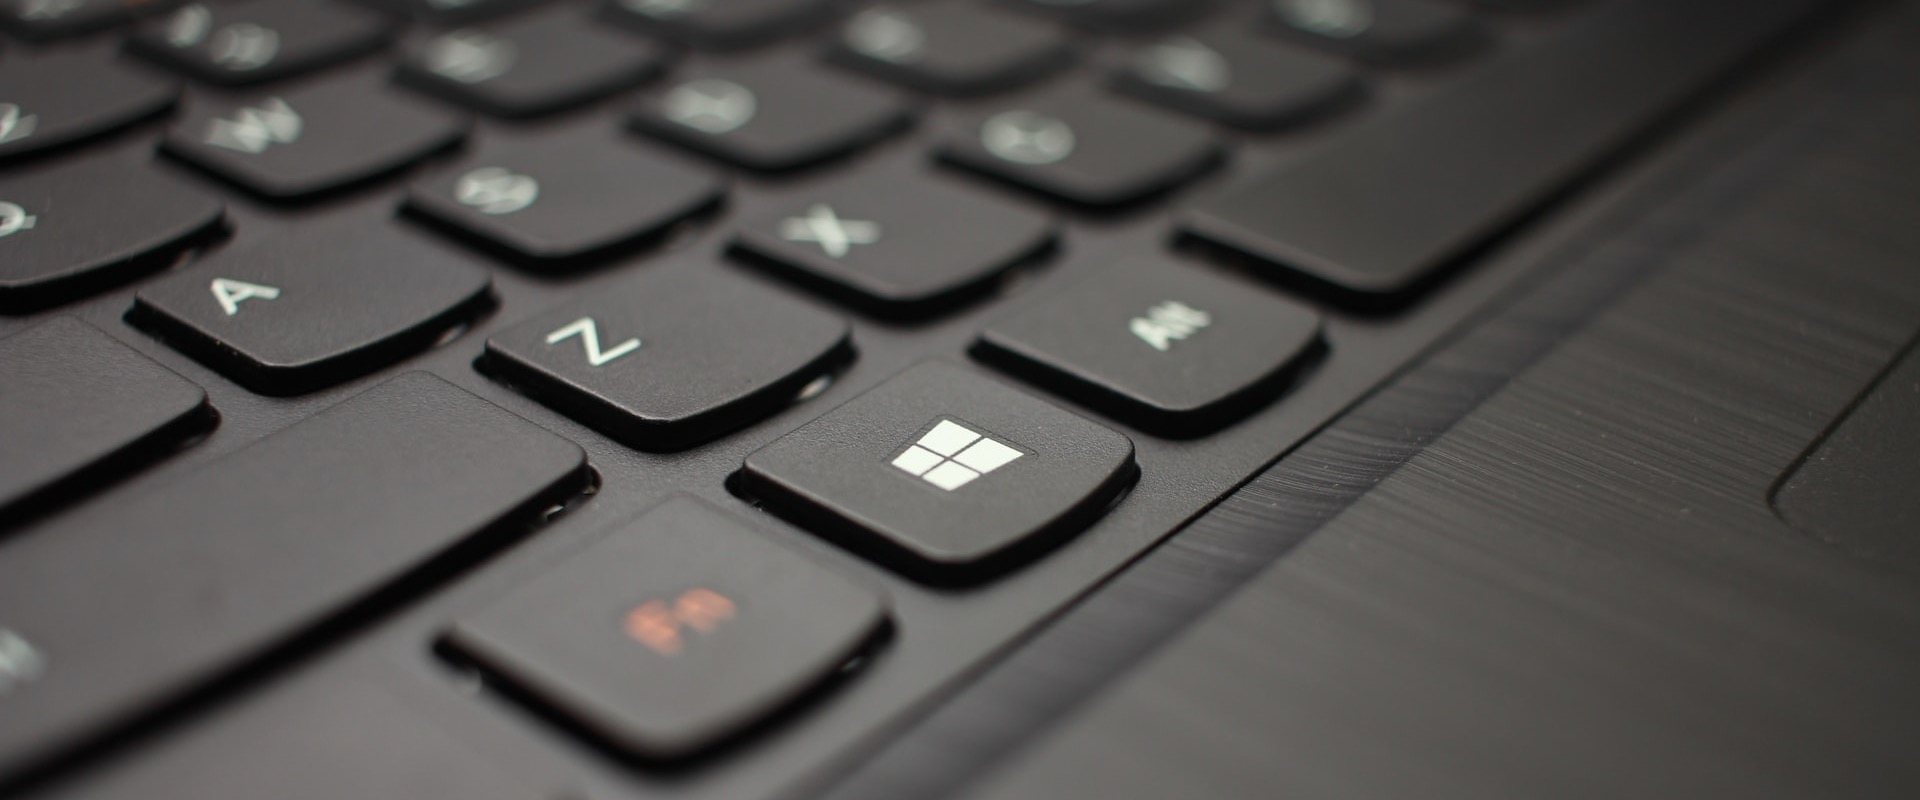 Common Keyboard Shortcuts to Work Faster on Your Computer